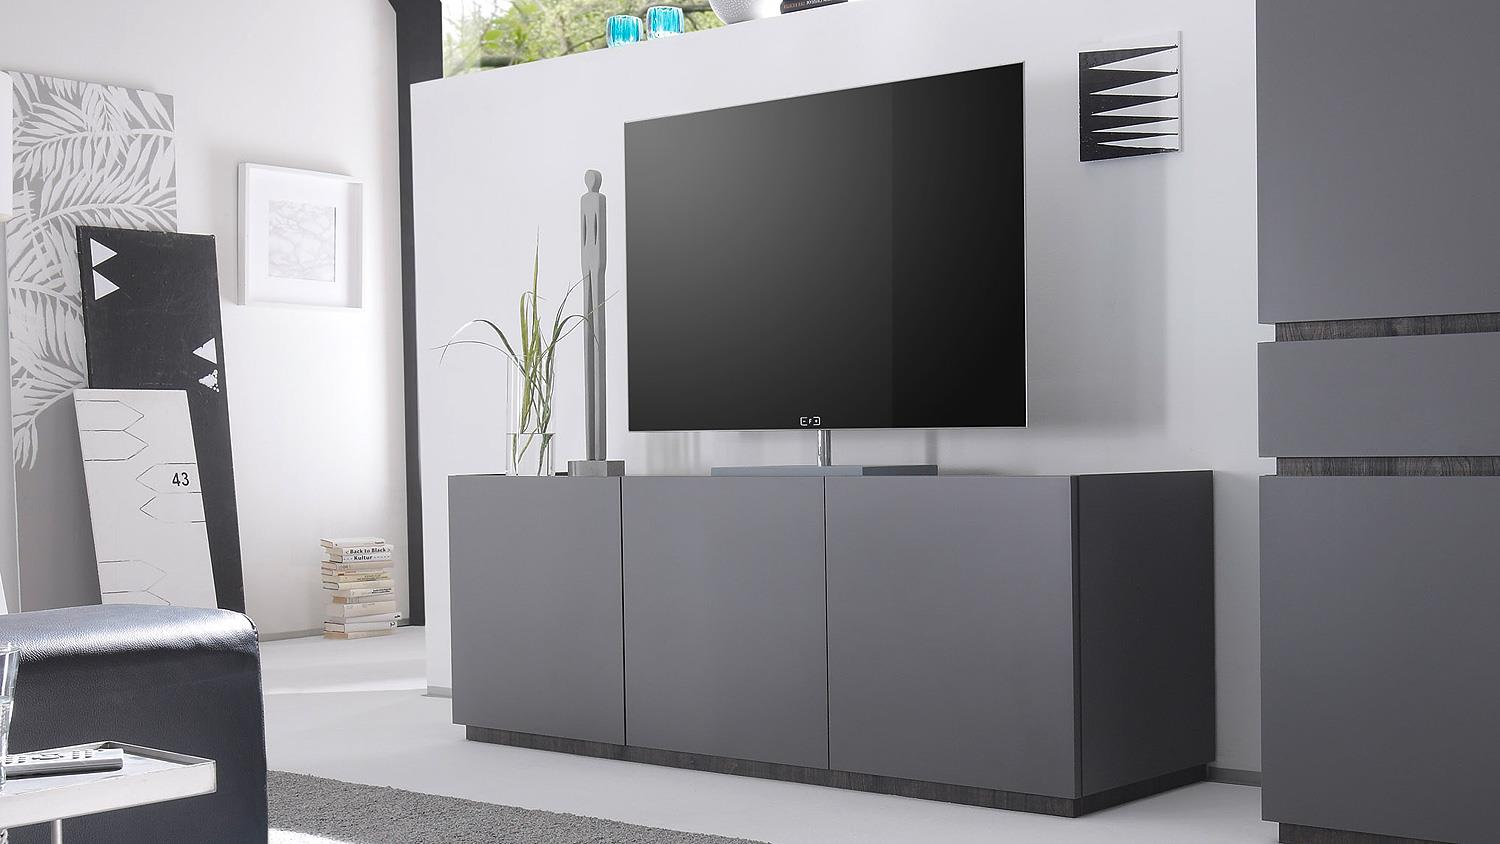 fernsehschrank geschlossen modern ambiznes 28 images fernsehschrank geschlossen modern. Black Bedroom Furniture Sets. Home Design Ideas